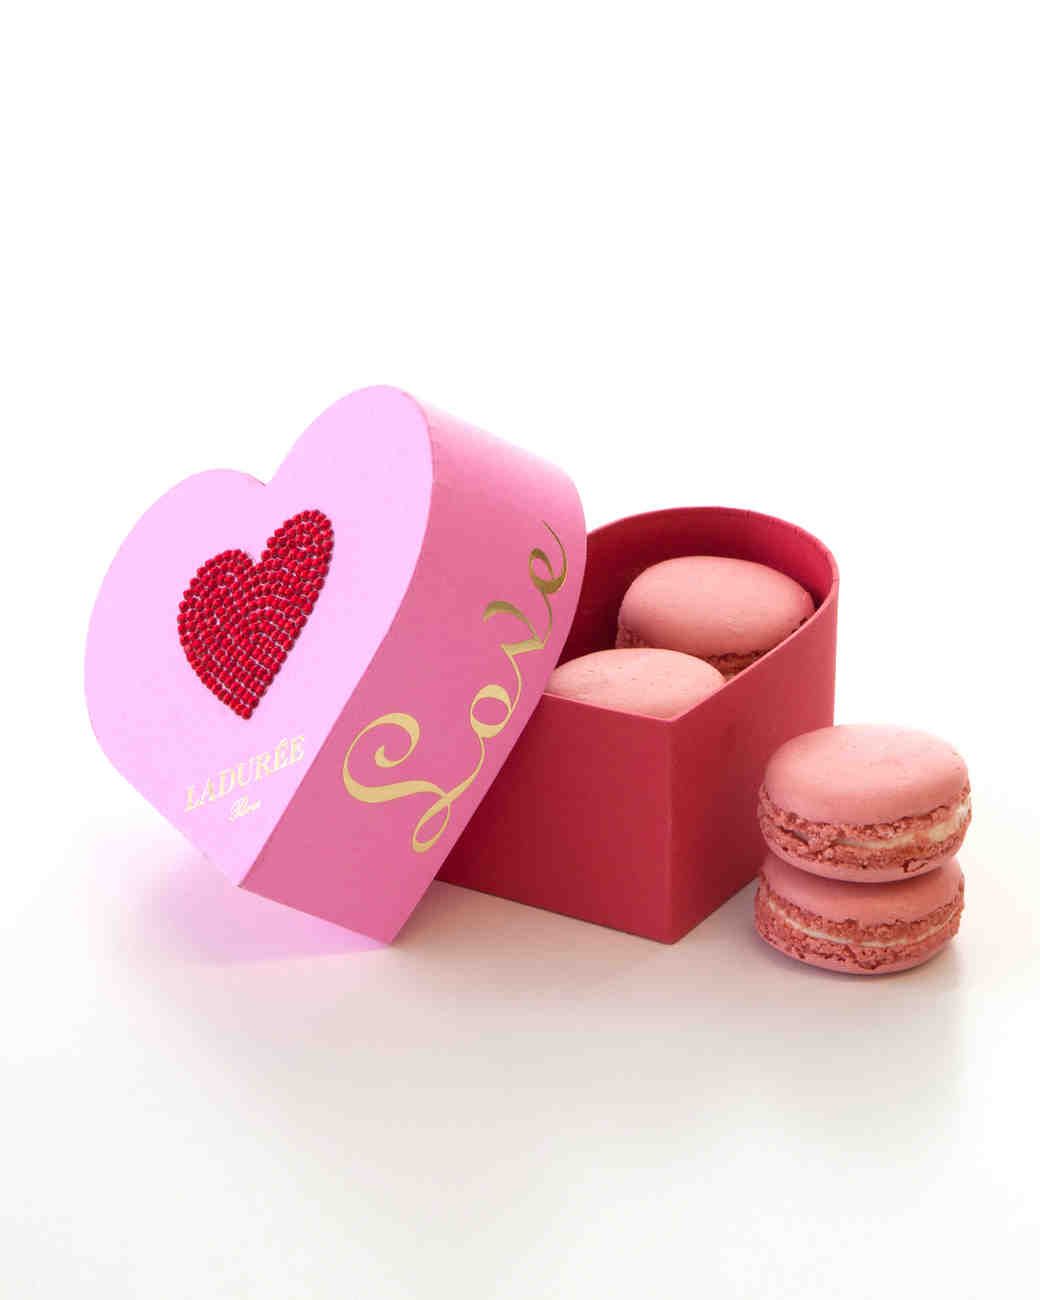 laduree-macarons-gift-guide-4314-d111898.jpg